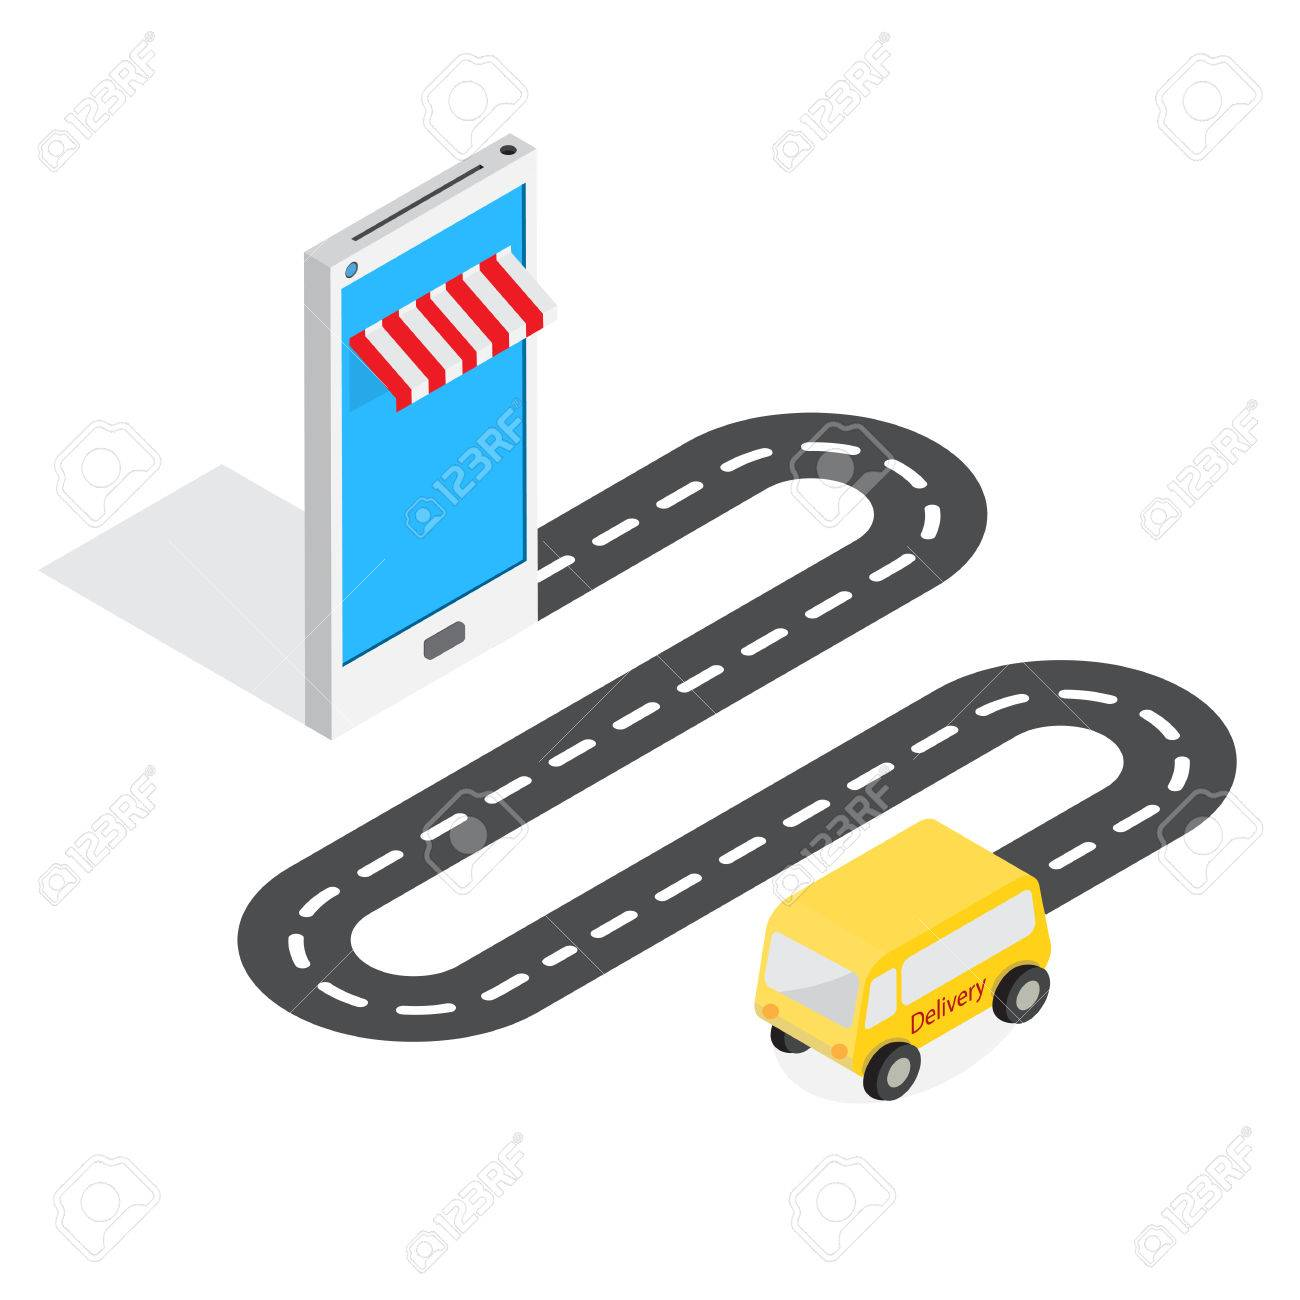 0917a70e184 online shop on mobile phone device symbol with road and delivery van shopping  online concept Stock